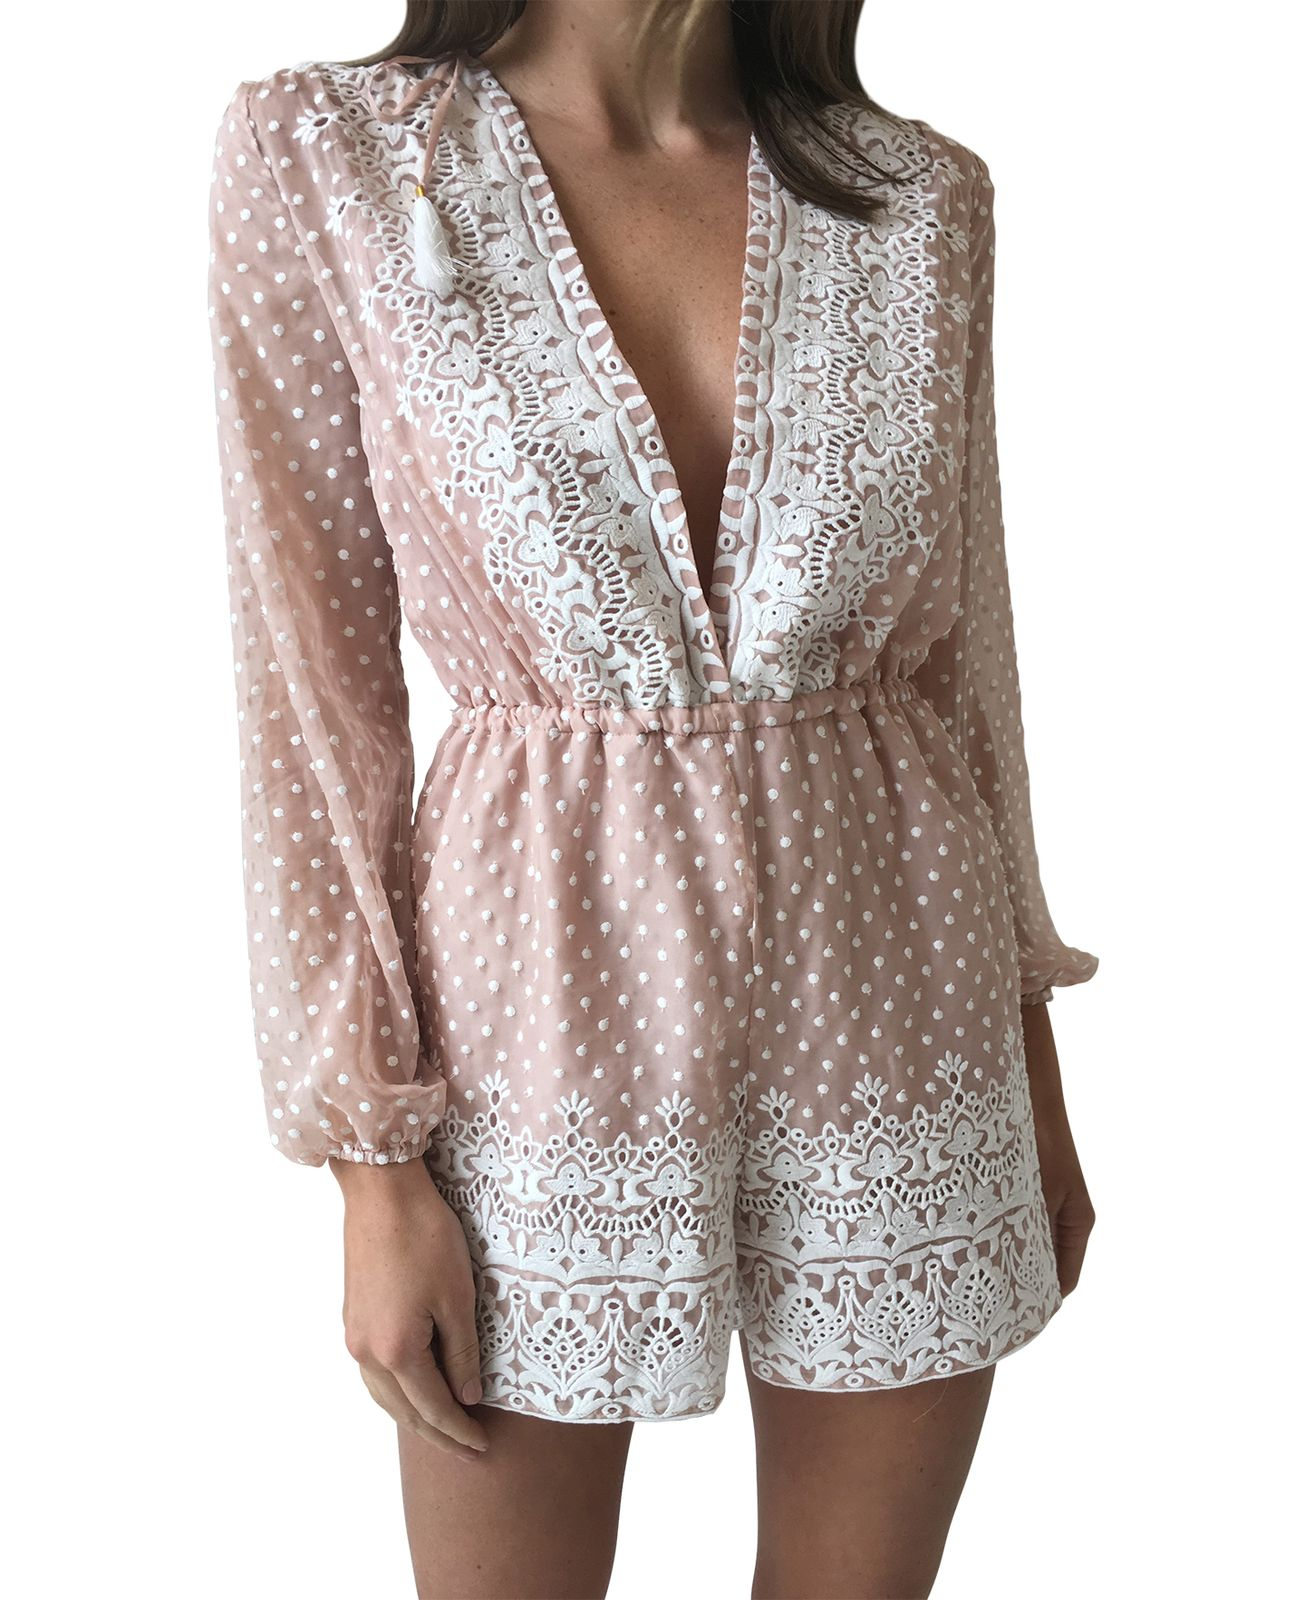 b92bae5eba Thurley Amalie Embroidered Onesie in Nude Ivory  Size  10